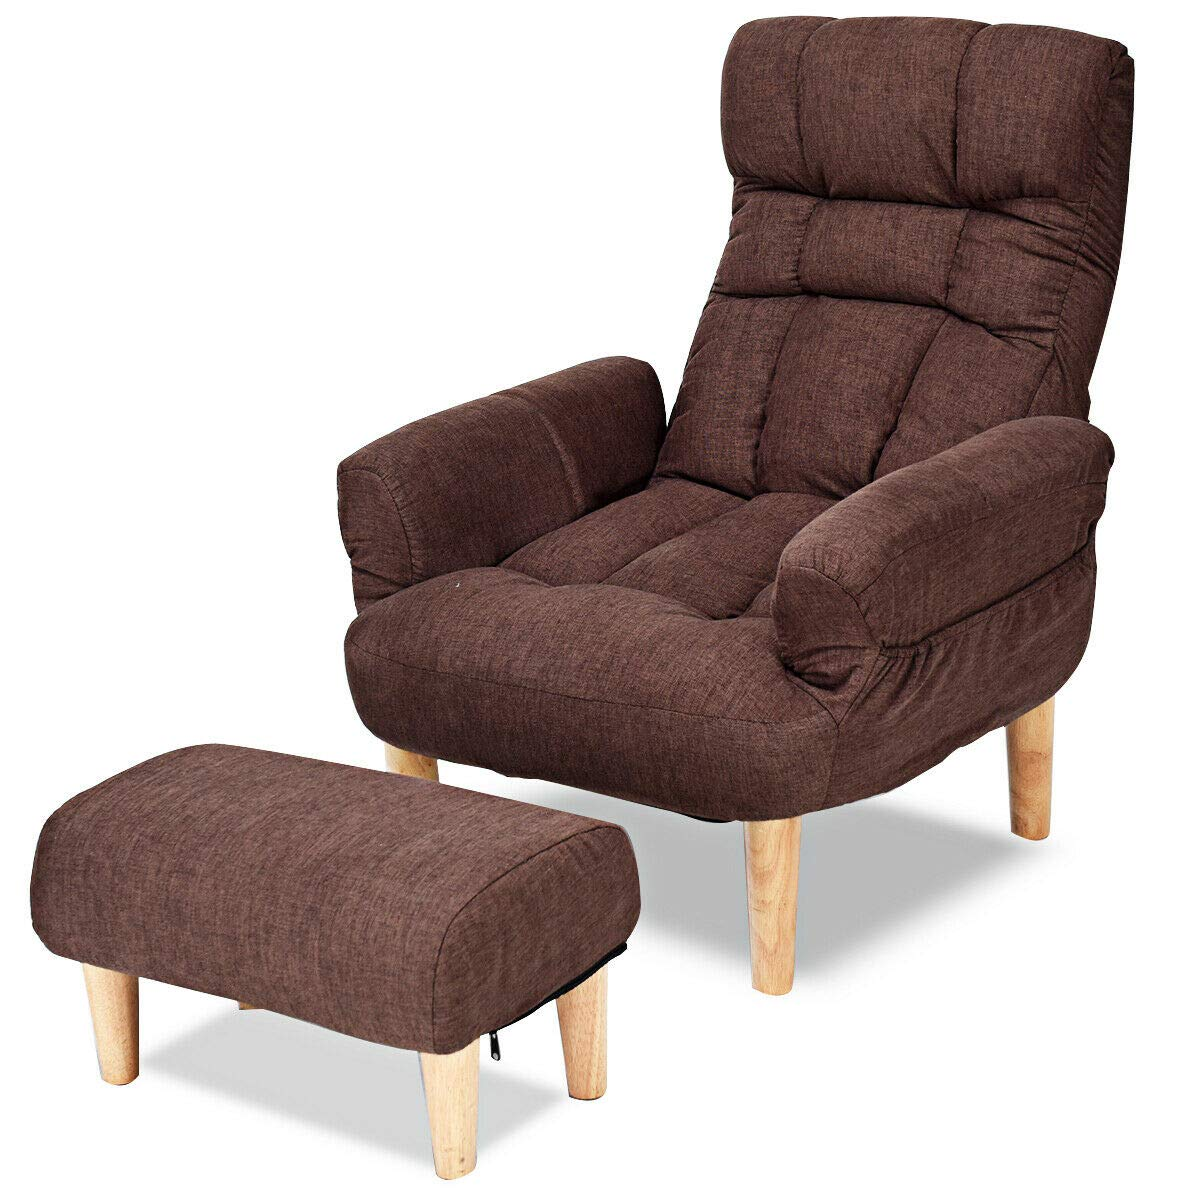 Surprising Giantex Folding Lazy Sofa Chair W Ottoman Thick Padded Linen Lounge Armchair Set Adjustable Backrest Headrest In 10 Position Easy Assembly Single Onthecornerstone Fun Painted Chair Ideas Images Onthecornerstoneorg